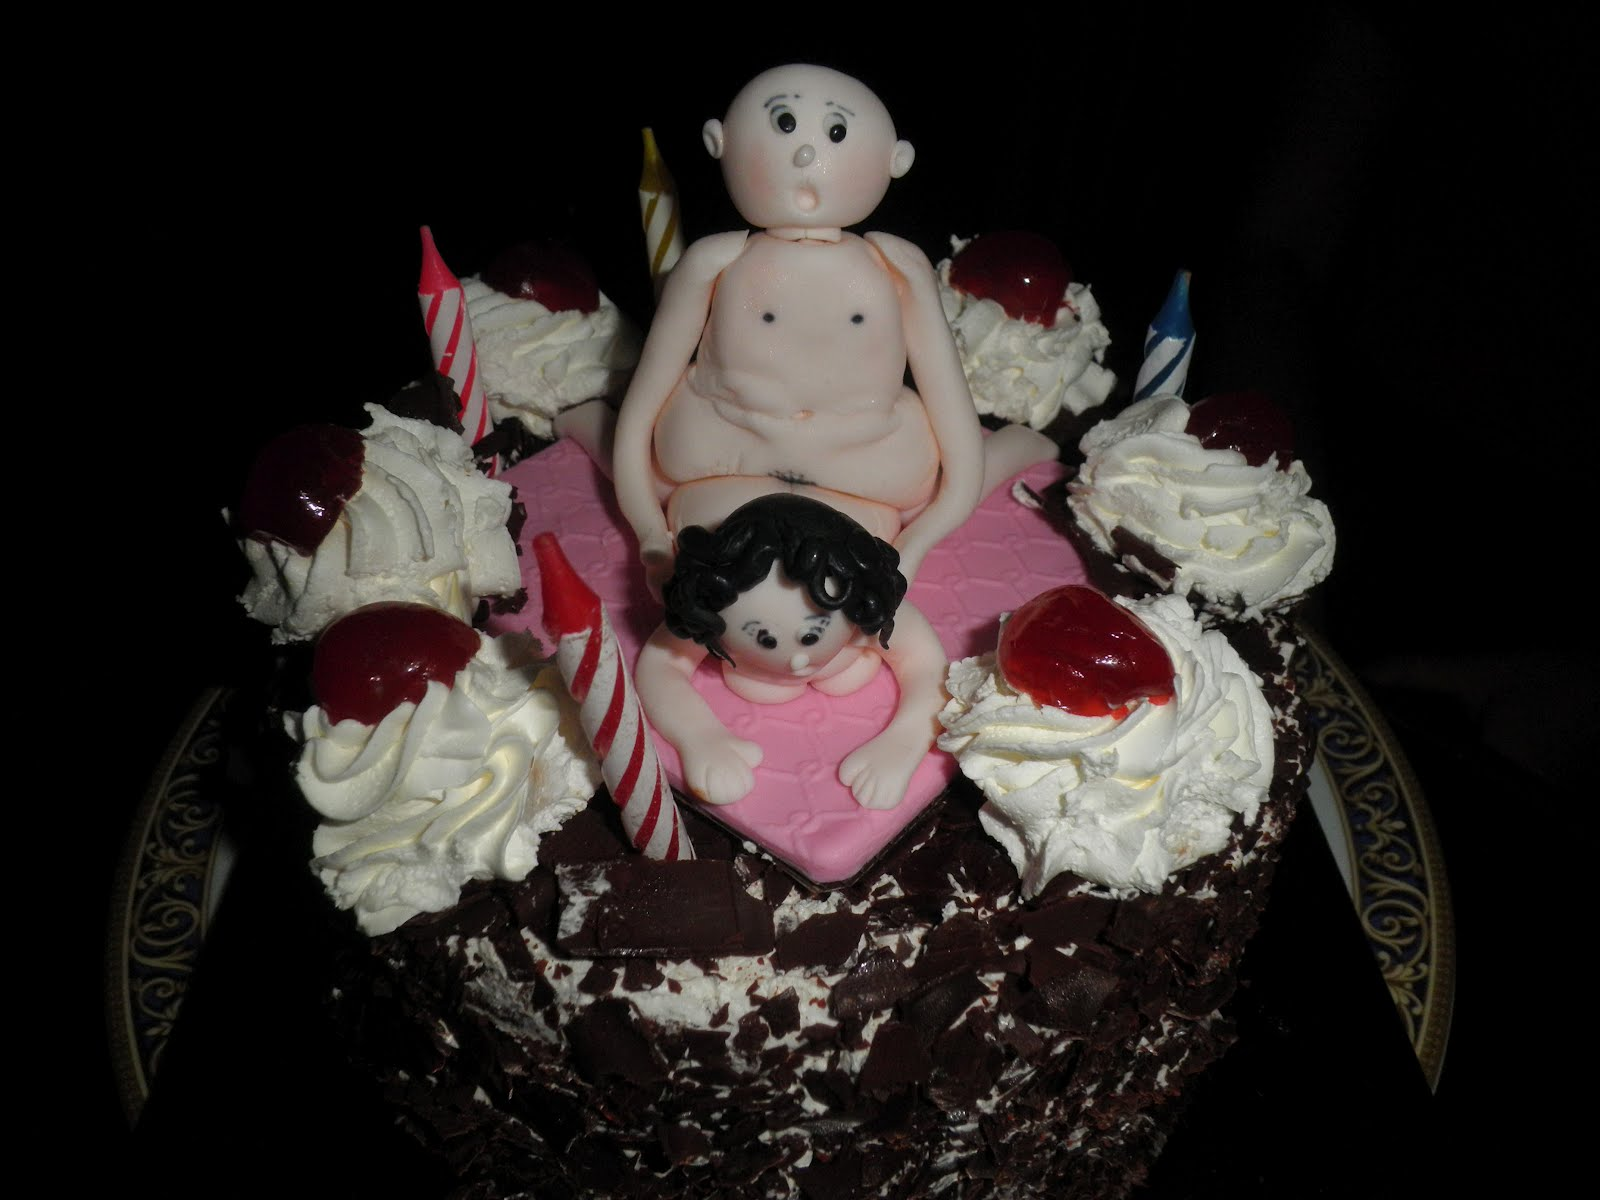 Images Of Naughty Birthday Cake : ceploktelor: NAUGHTY CAKE